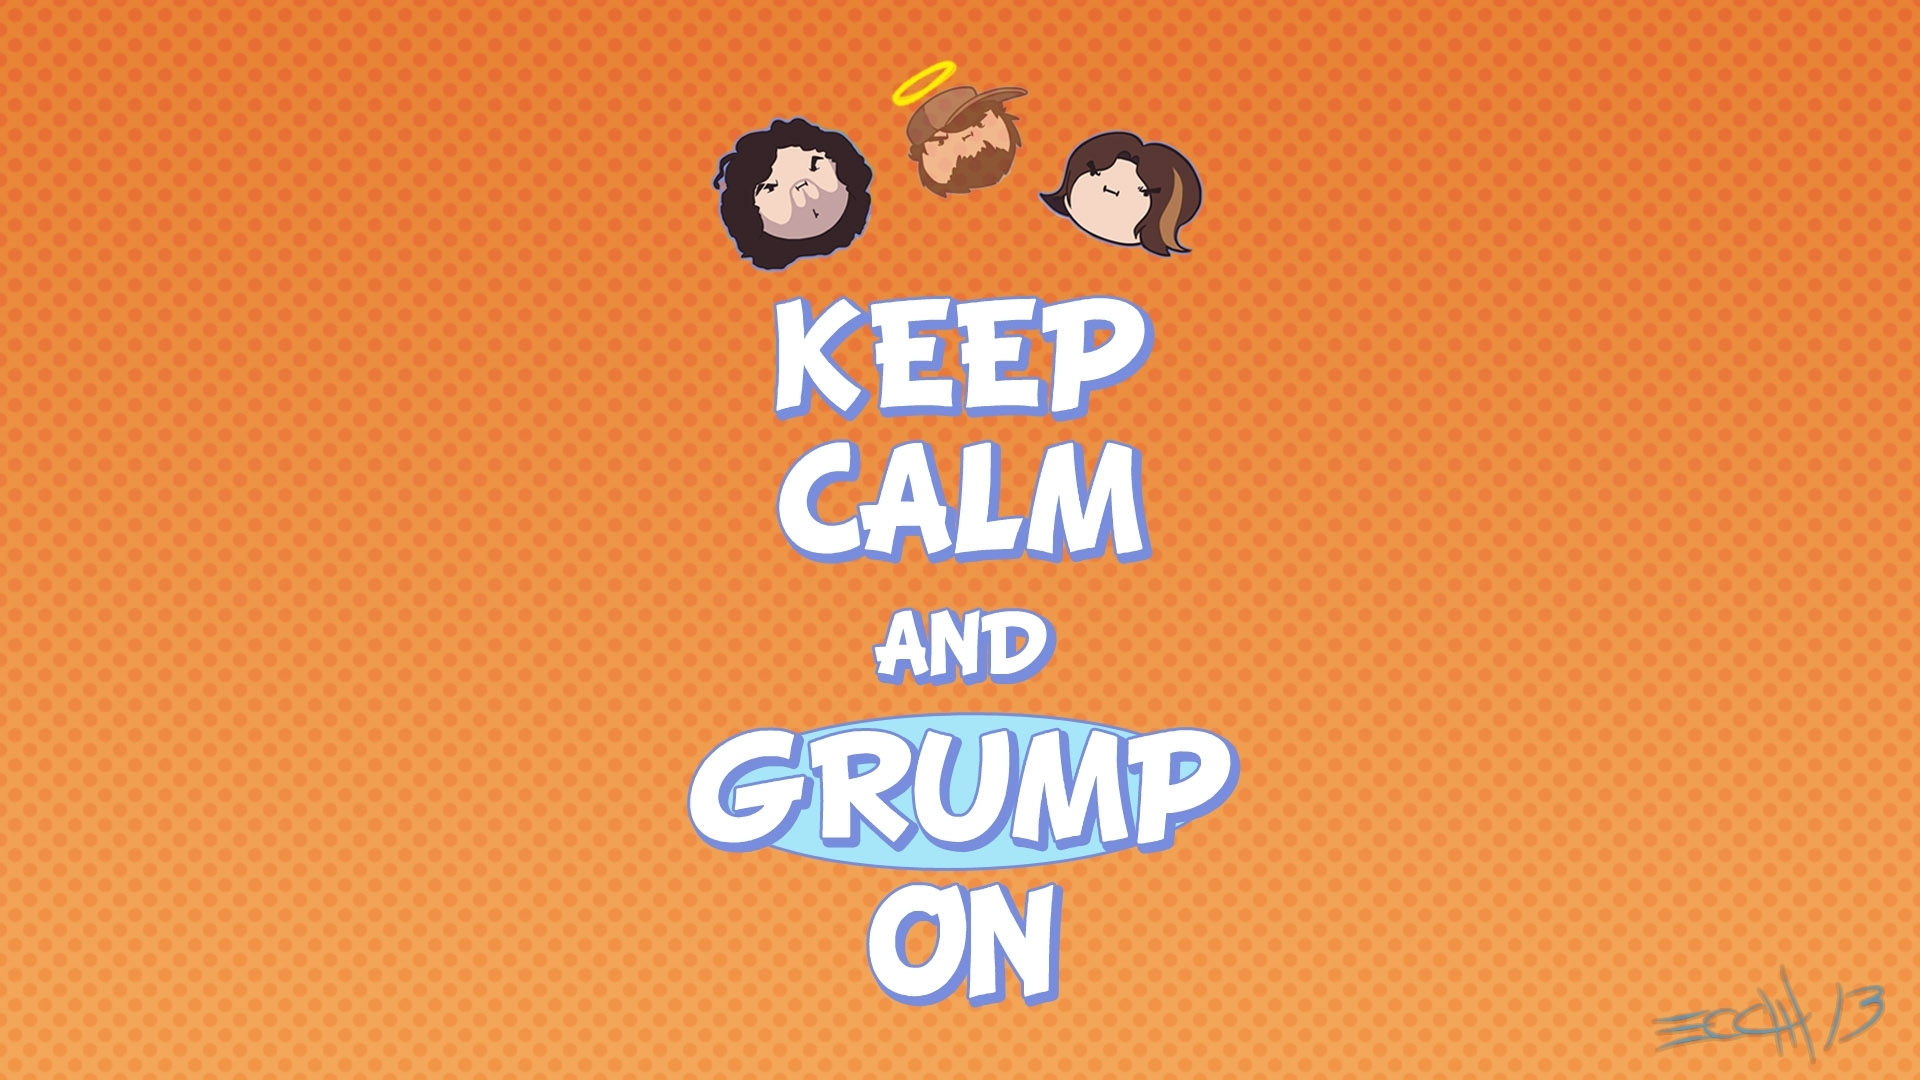 keep calm and grump on   game grumps   know your meme